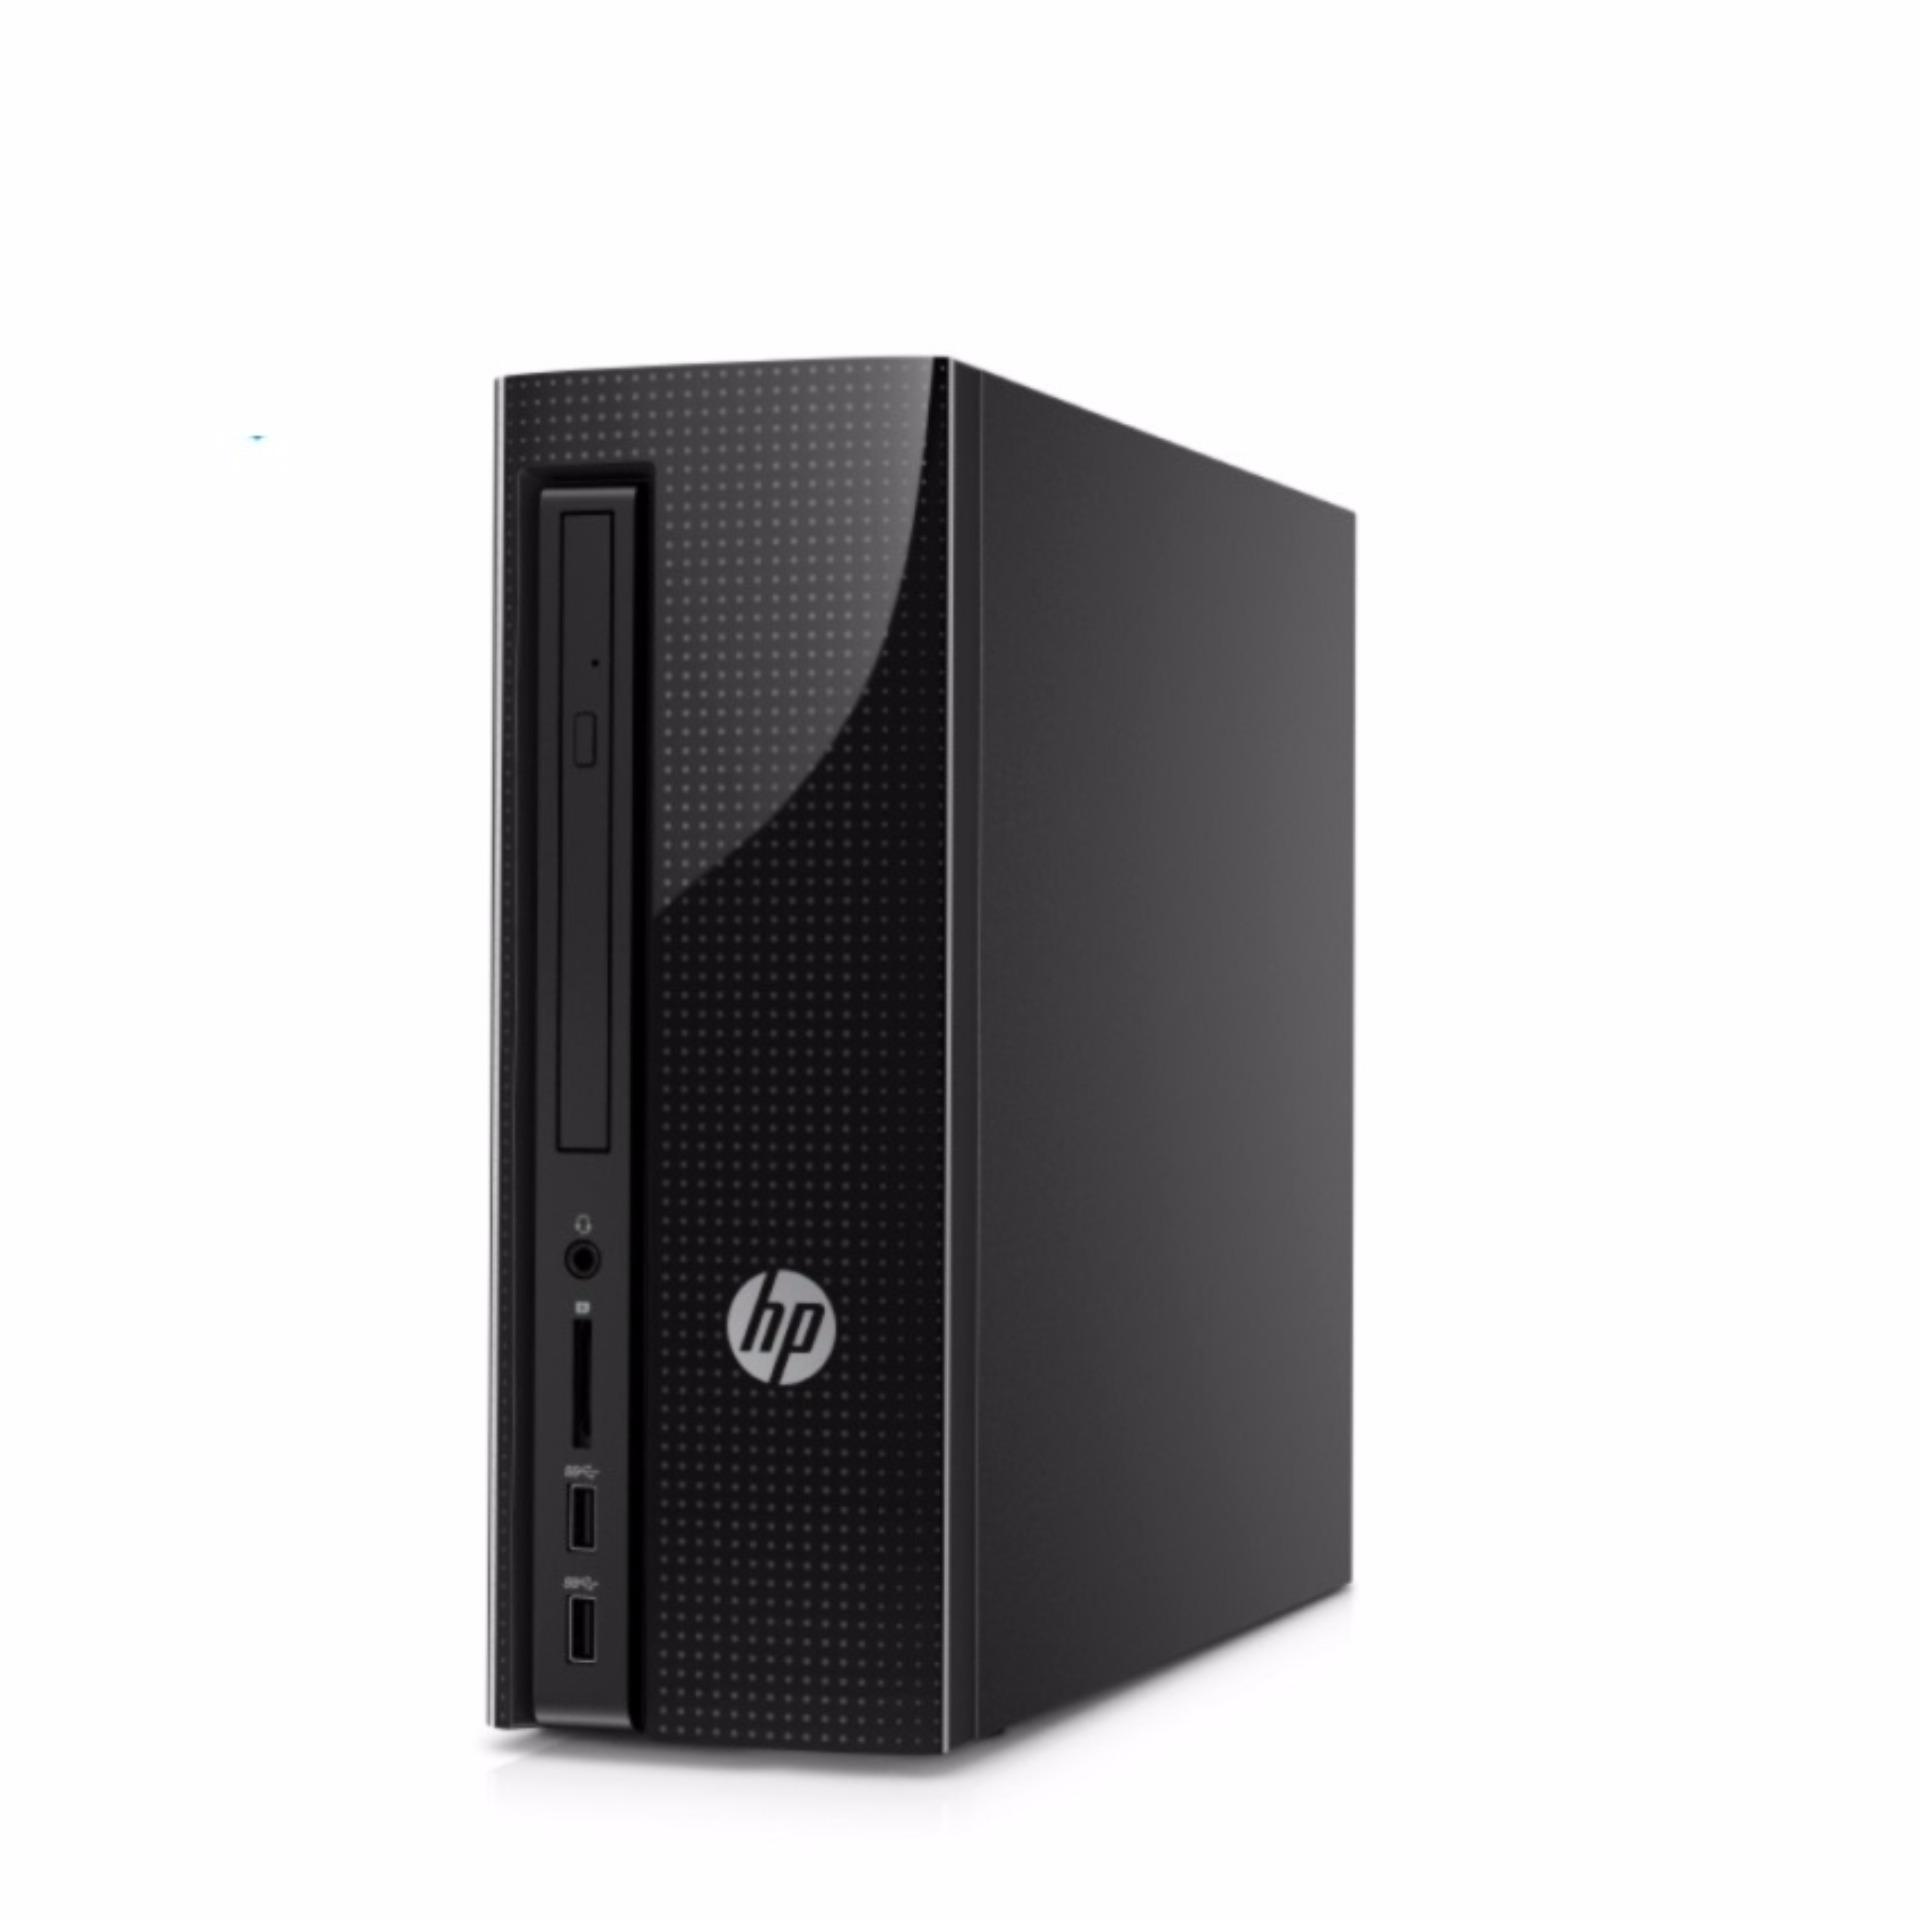 HP Slimline 270-p023d Intel® Core™ i7-7700T Processor (2.9 GHz, up to 3.8 GHz, 8 MB cache, 4 cores Windows 10...